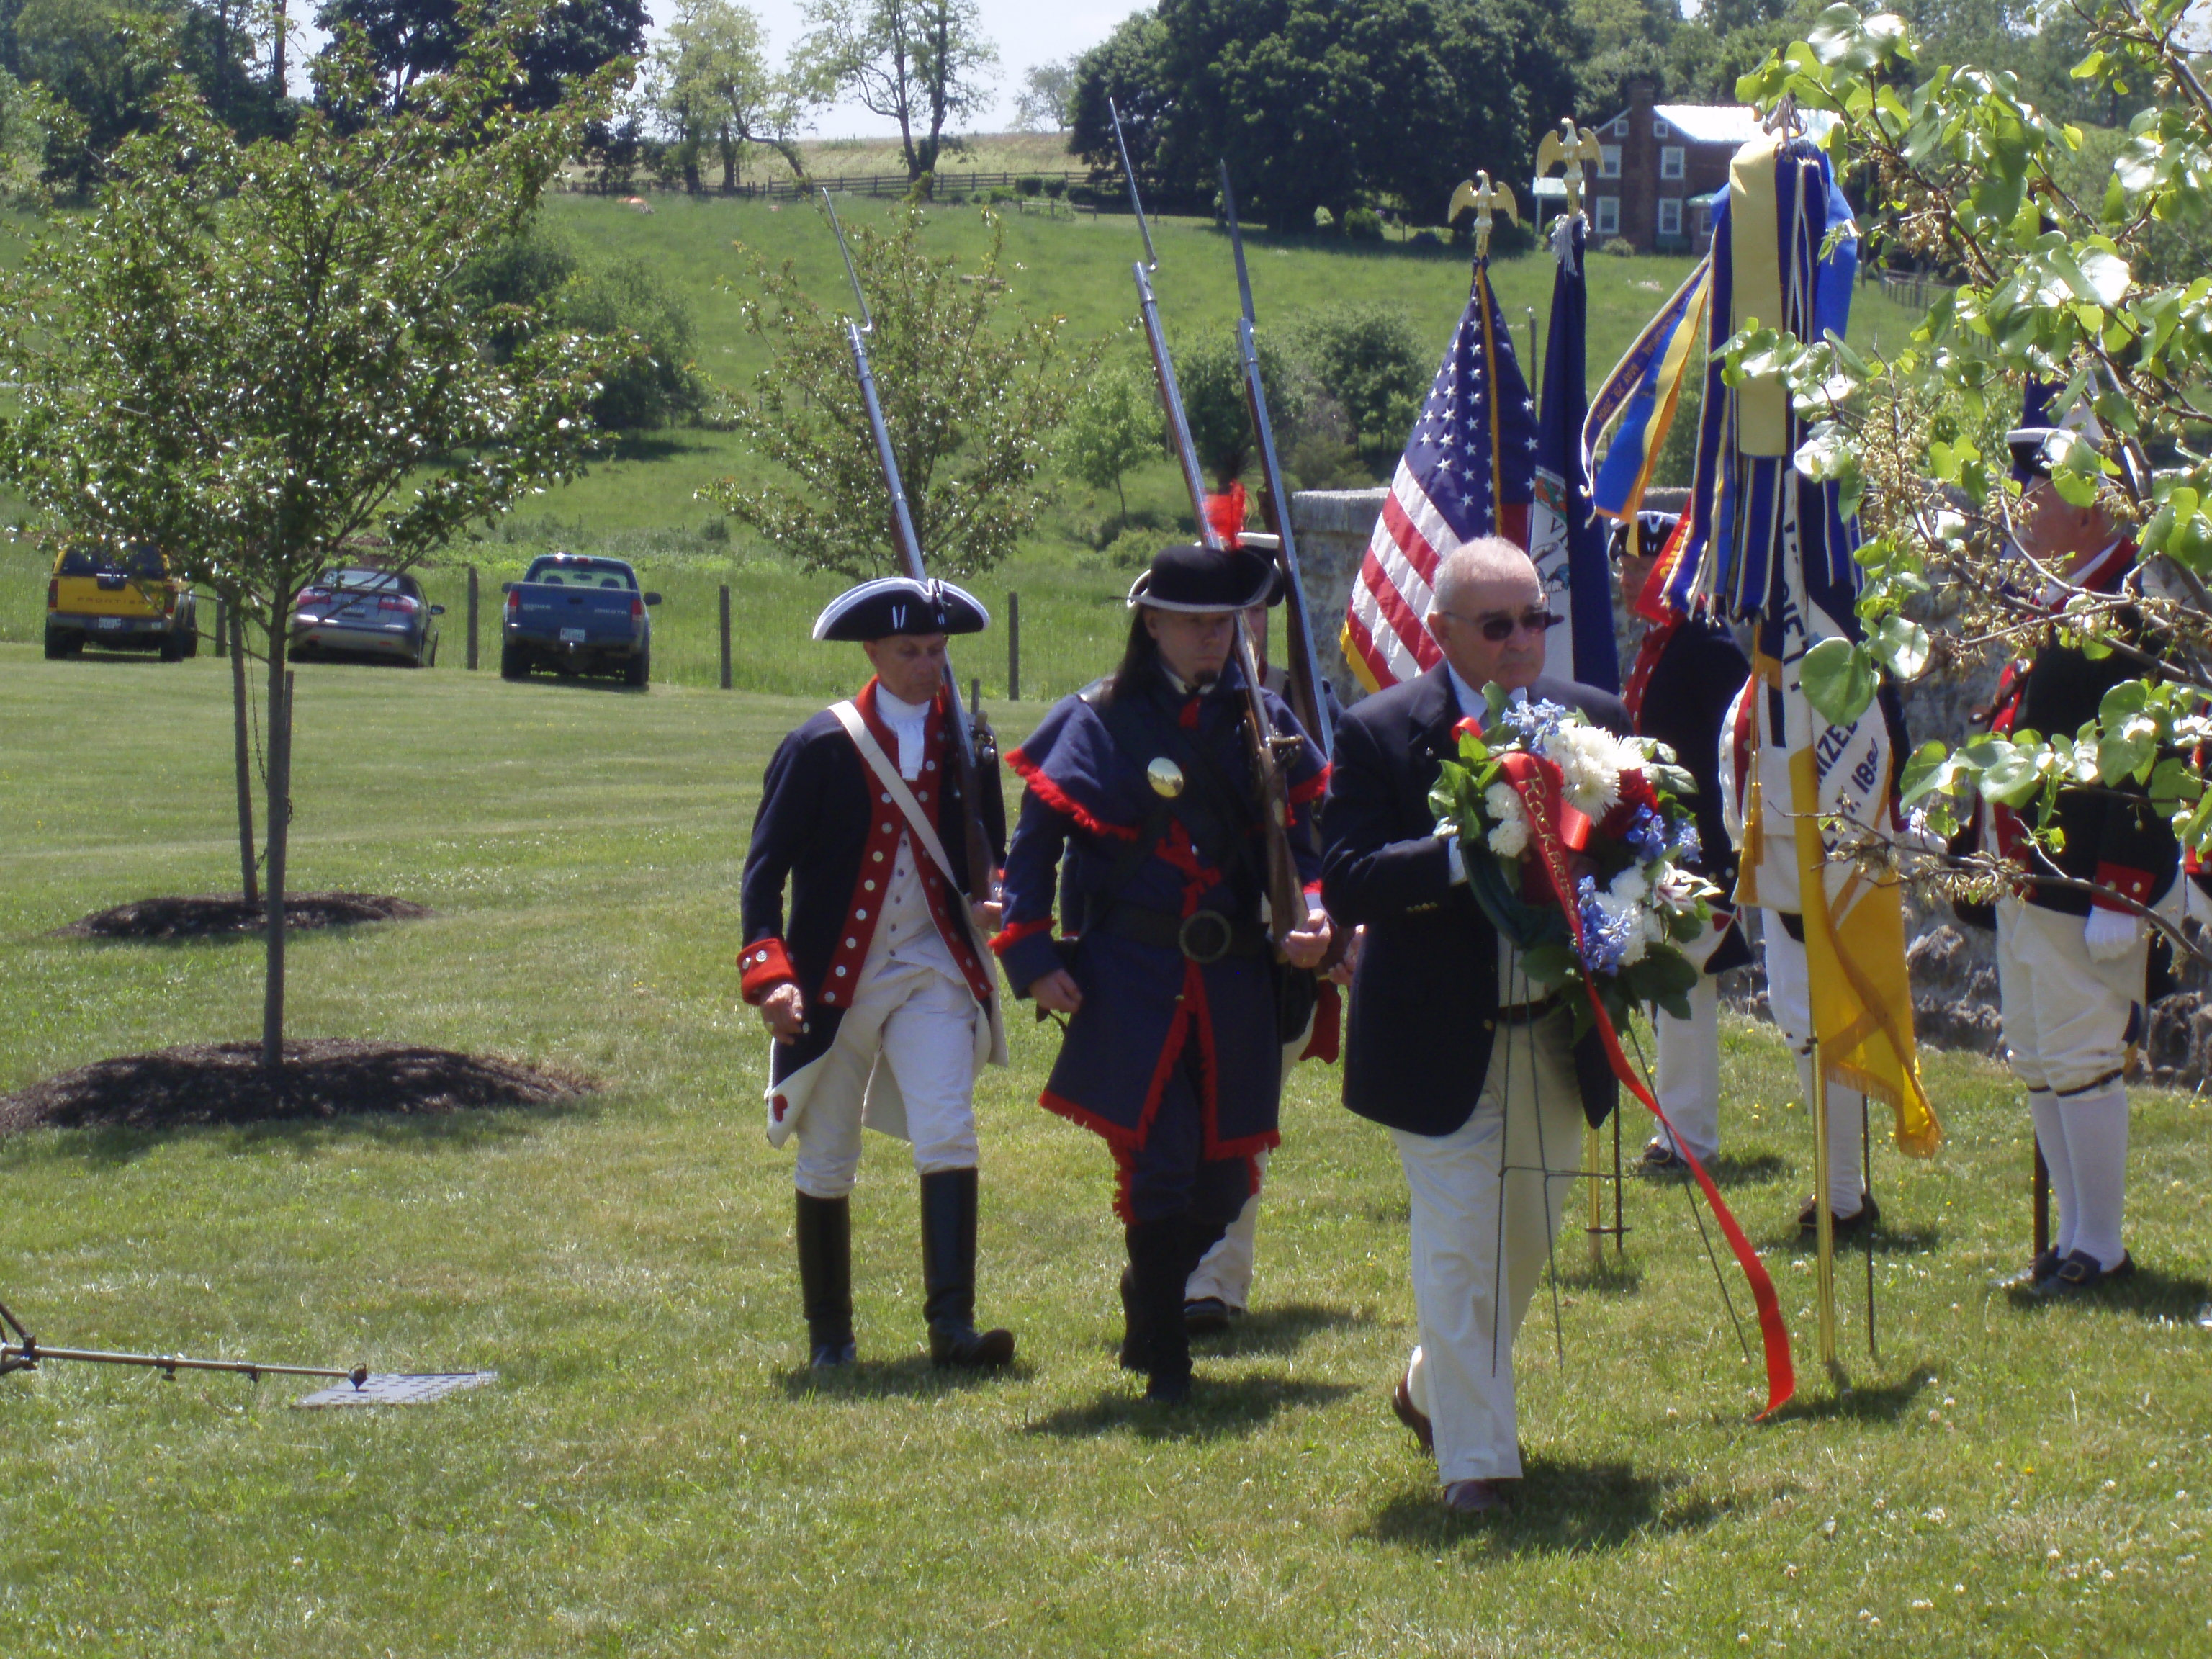 Wreath presenters are escorted by color guard